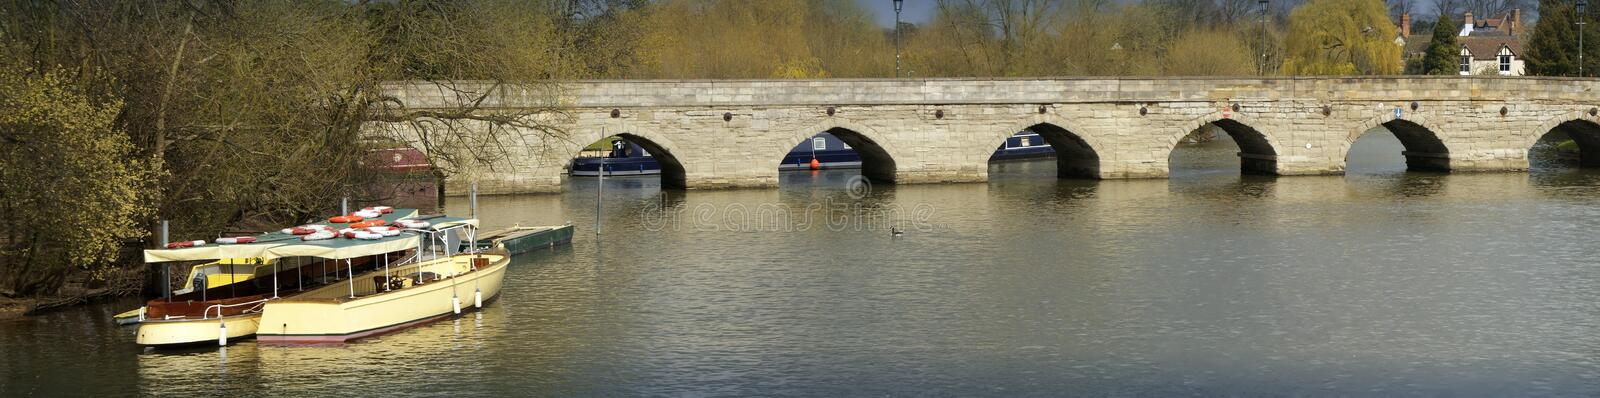 Download River avon stock image. Image of boats, ancient, warwickshire - 4817475